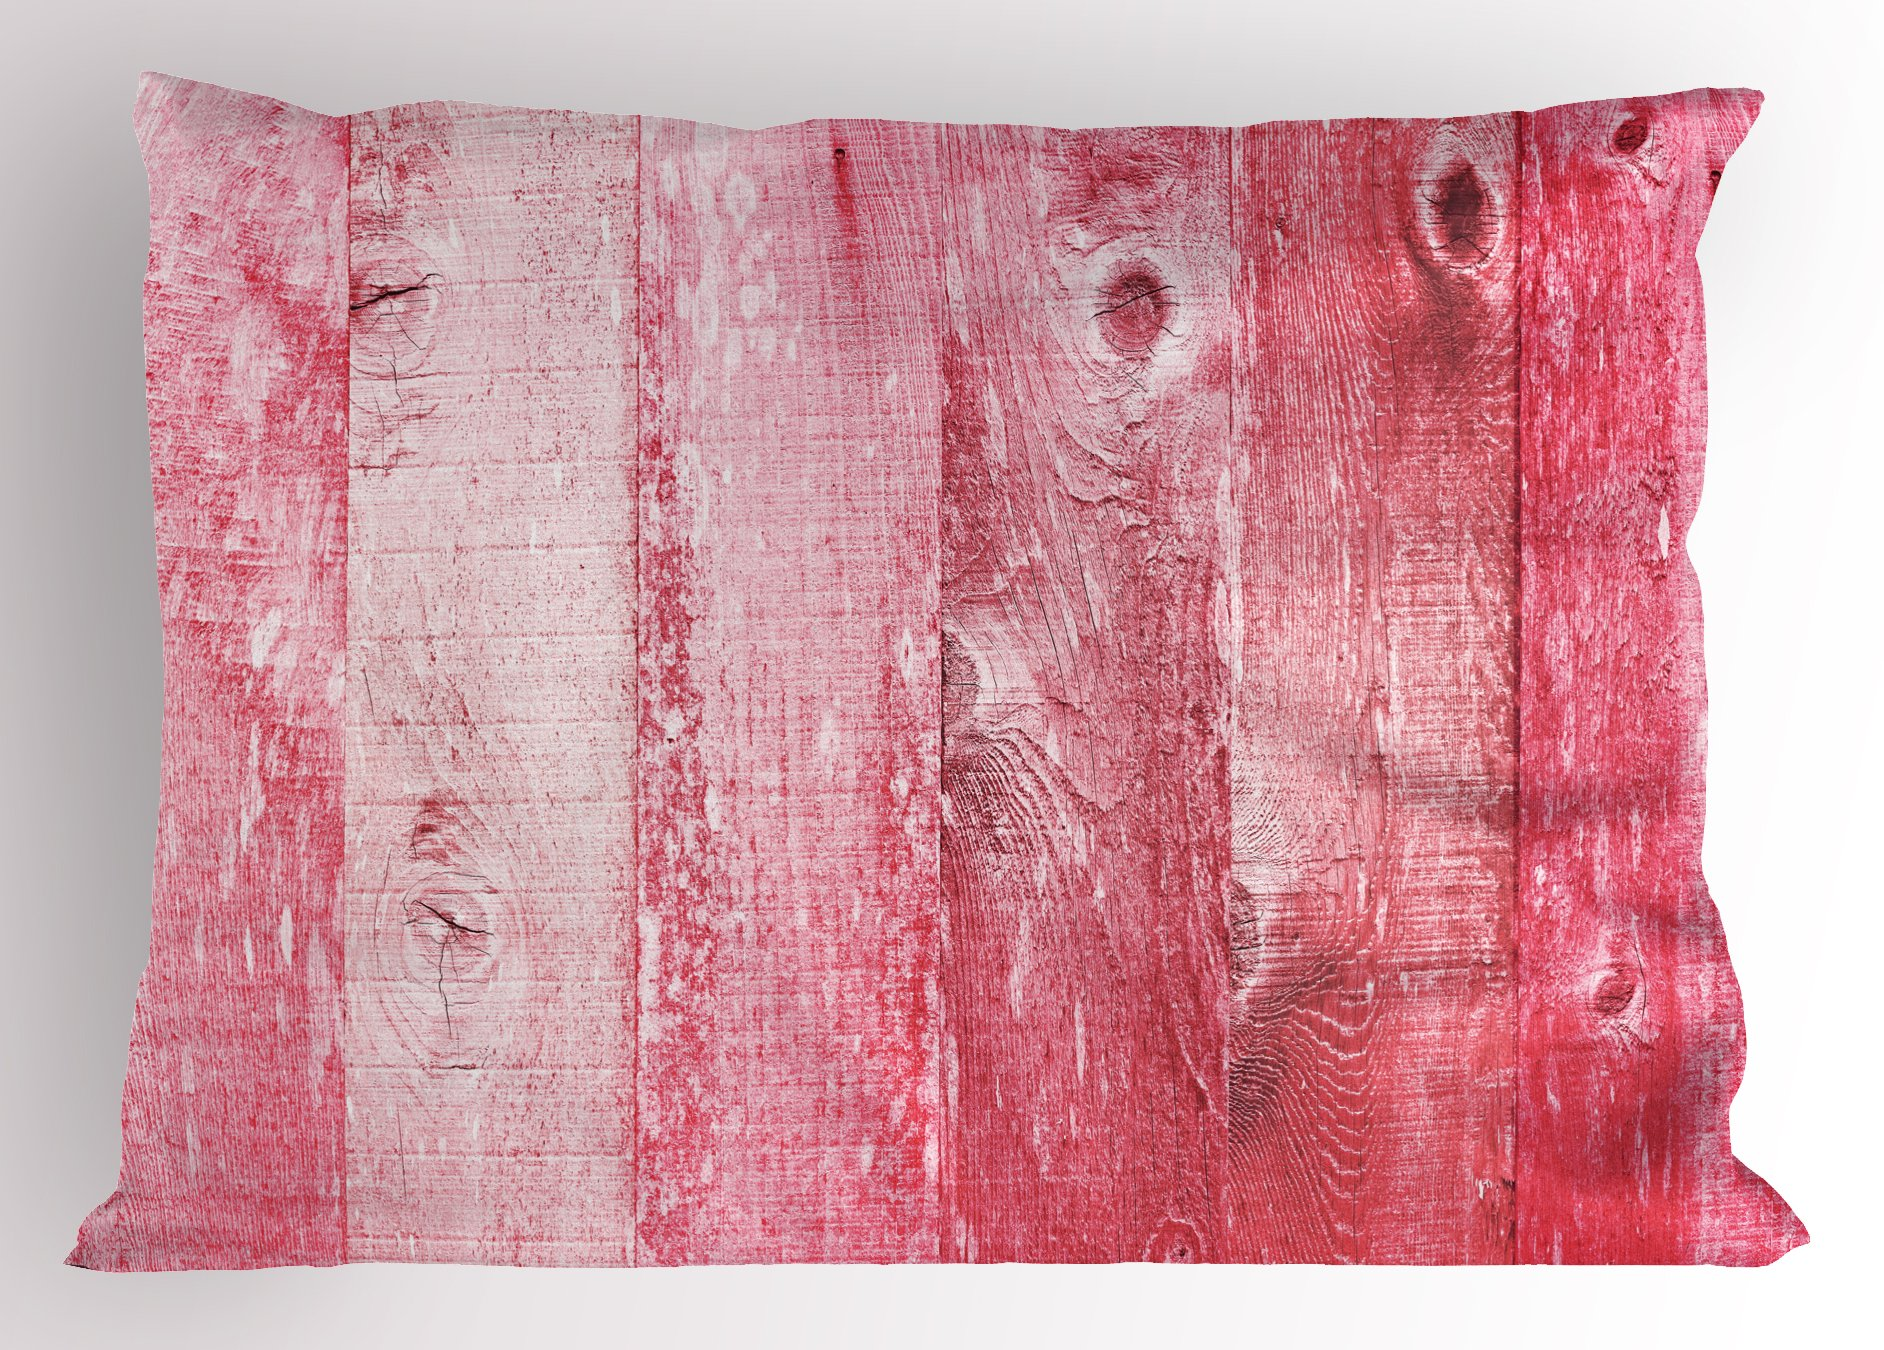 Ambesonne Pink and White Pillow Sham, Distressed Vintage Grunge Texture Image of Wood Planks Painted in Pink, Decorative Standard King Size Printed Pillowcase, 36 X 20 inches, Dark Coral Pink